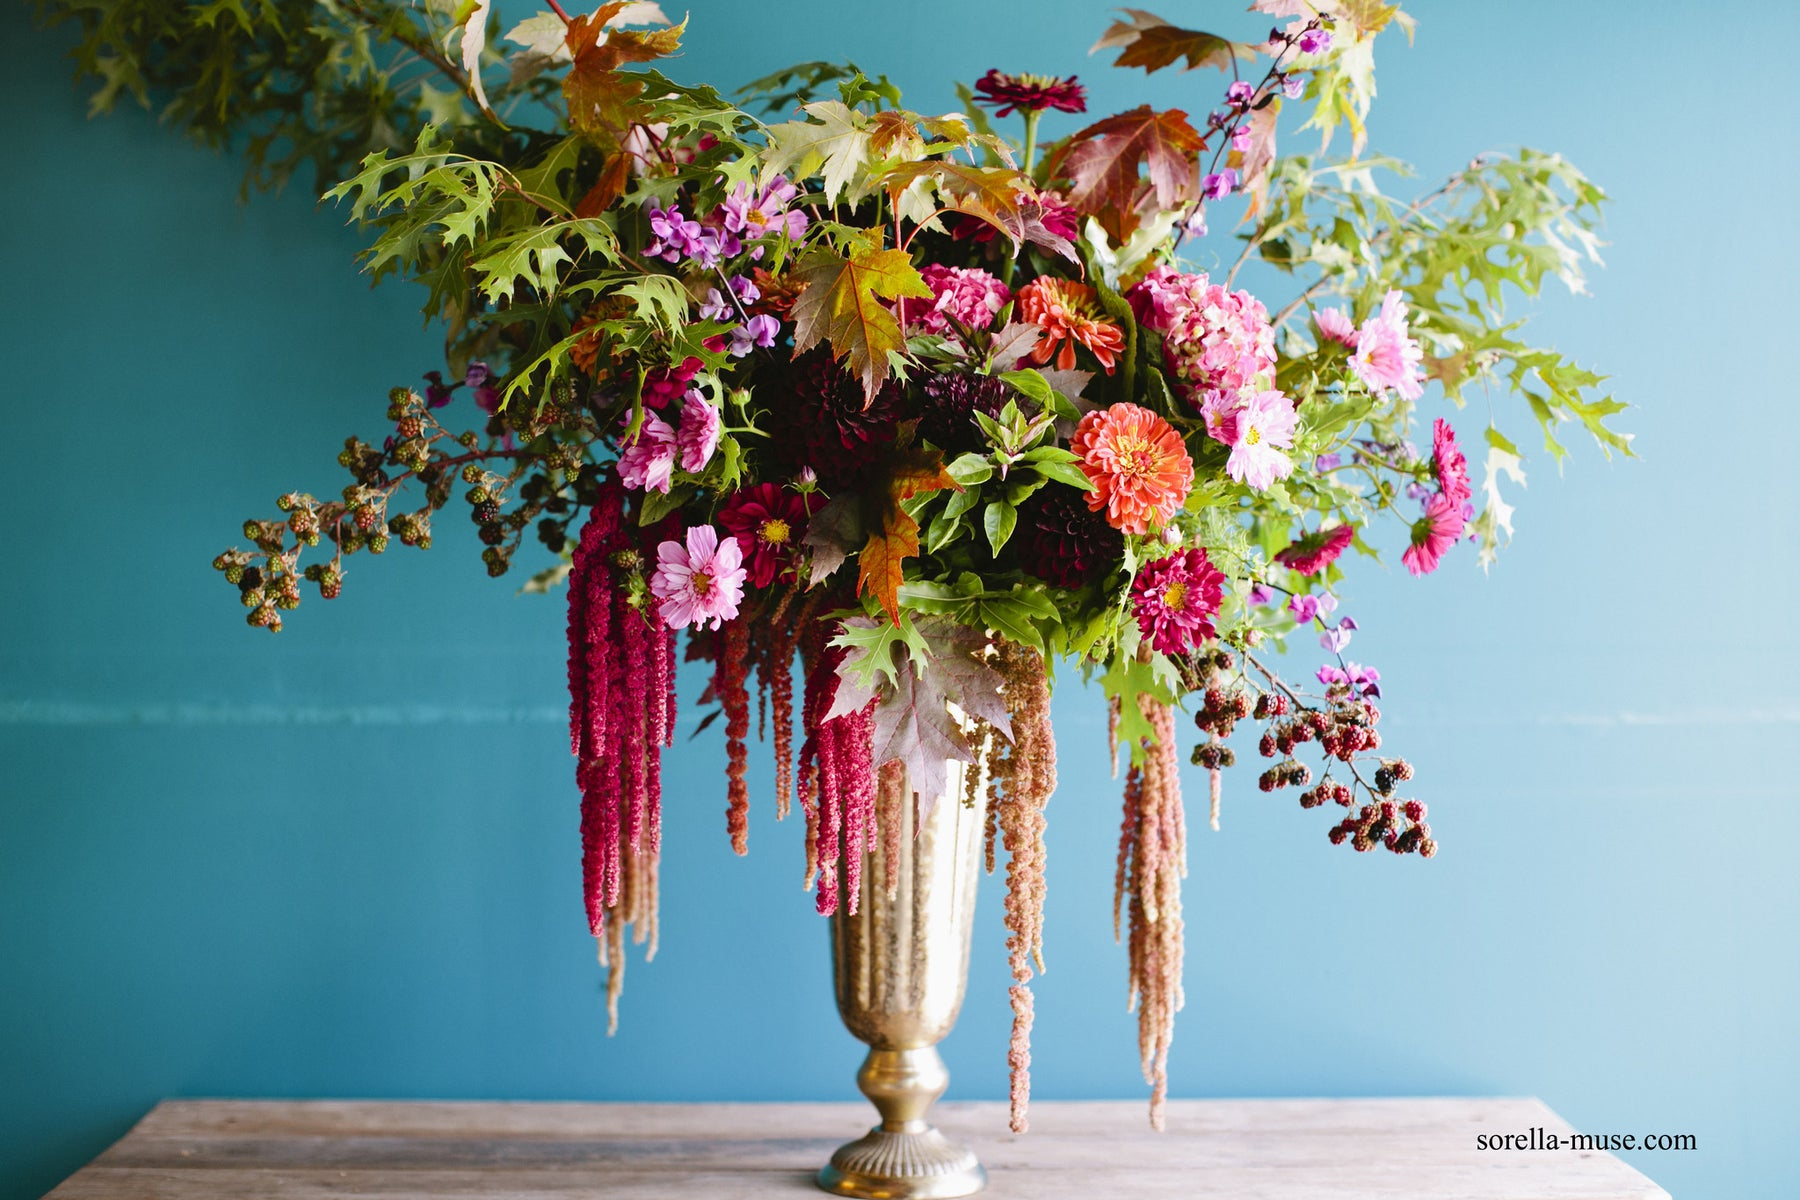 teal wall with burgundy and pink draping florals in a pedestal vase